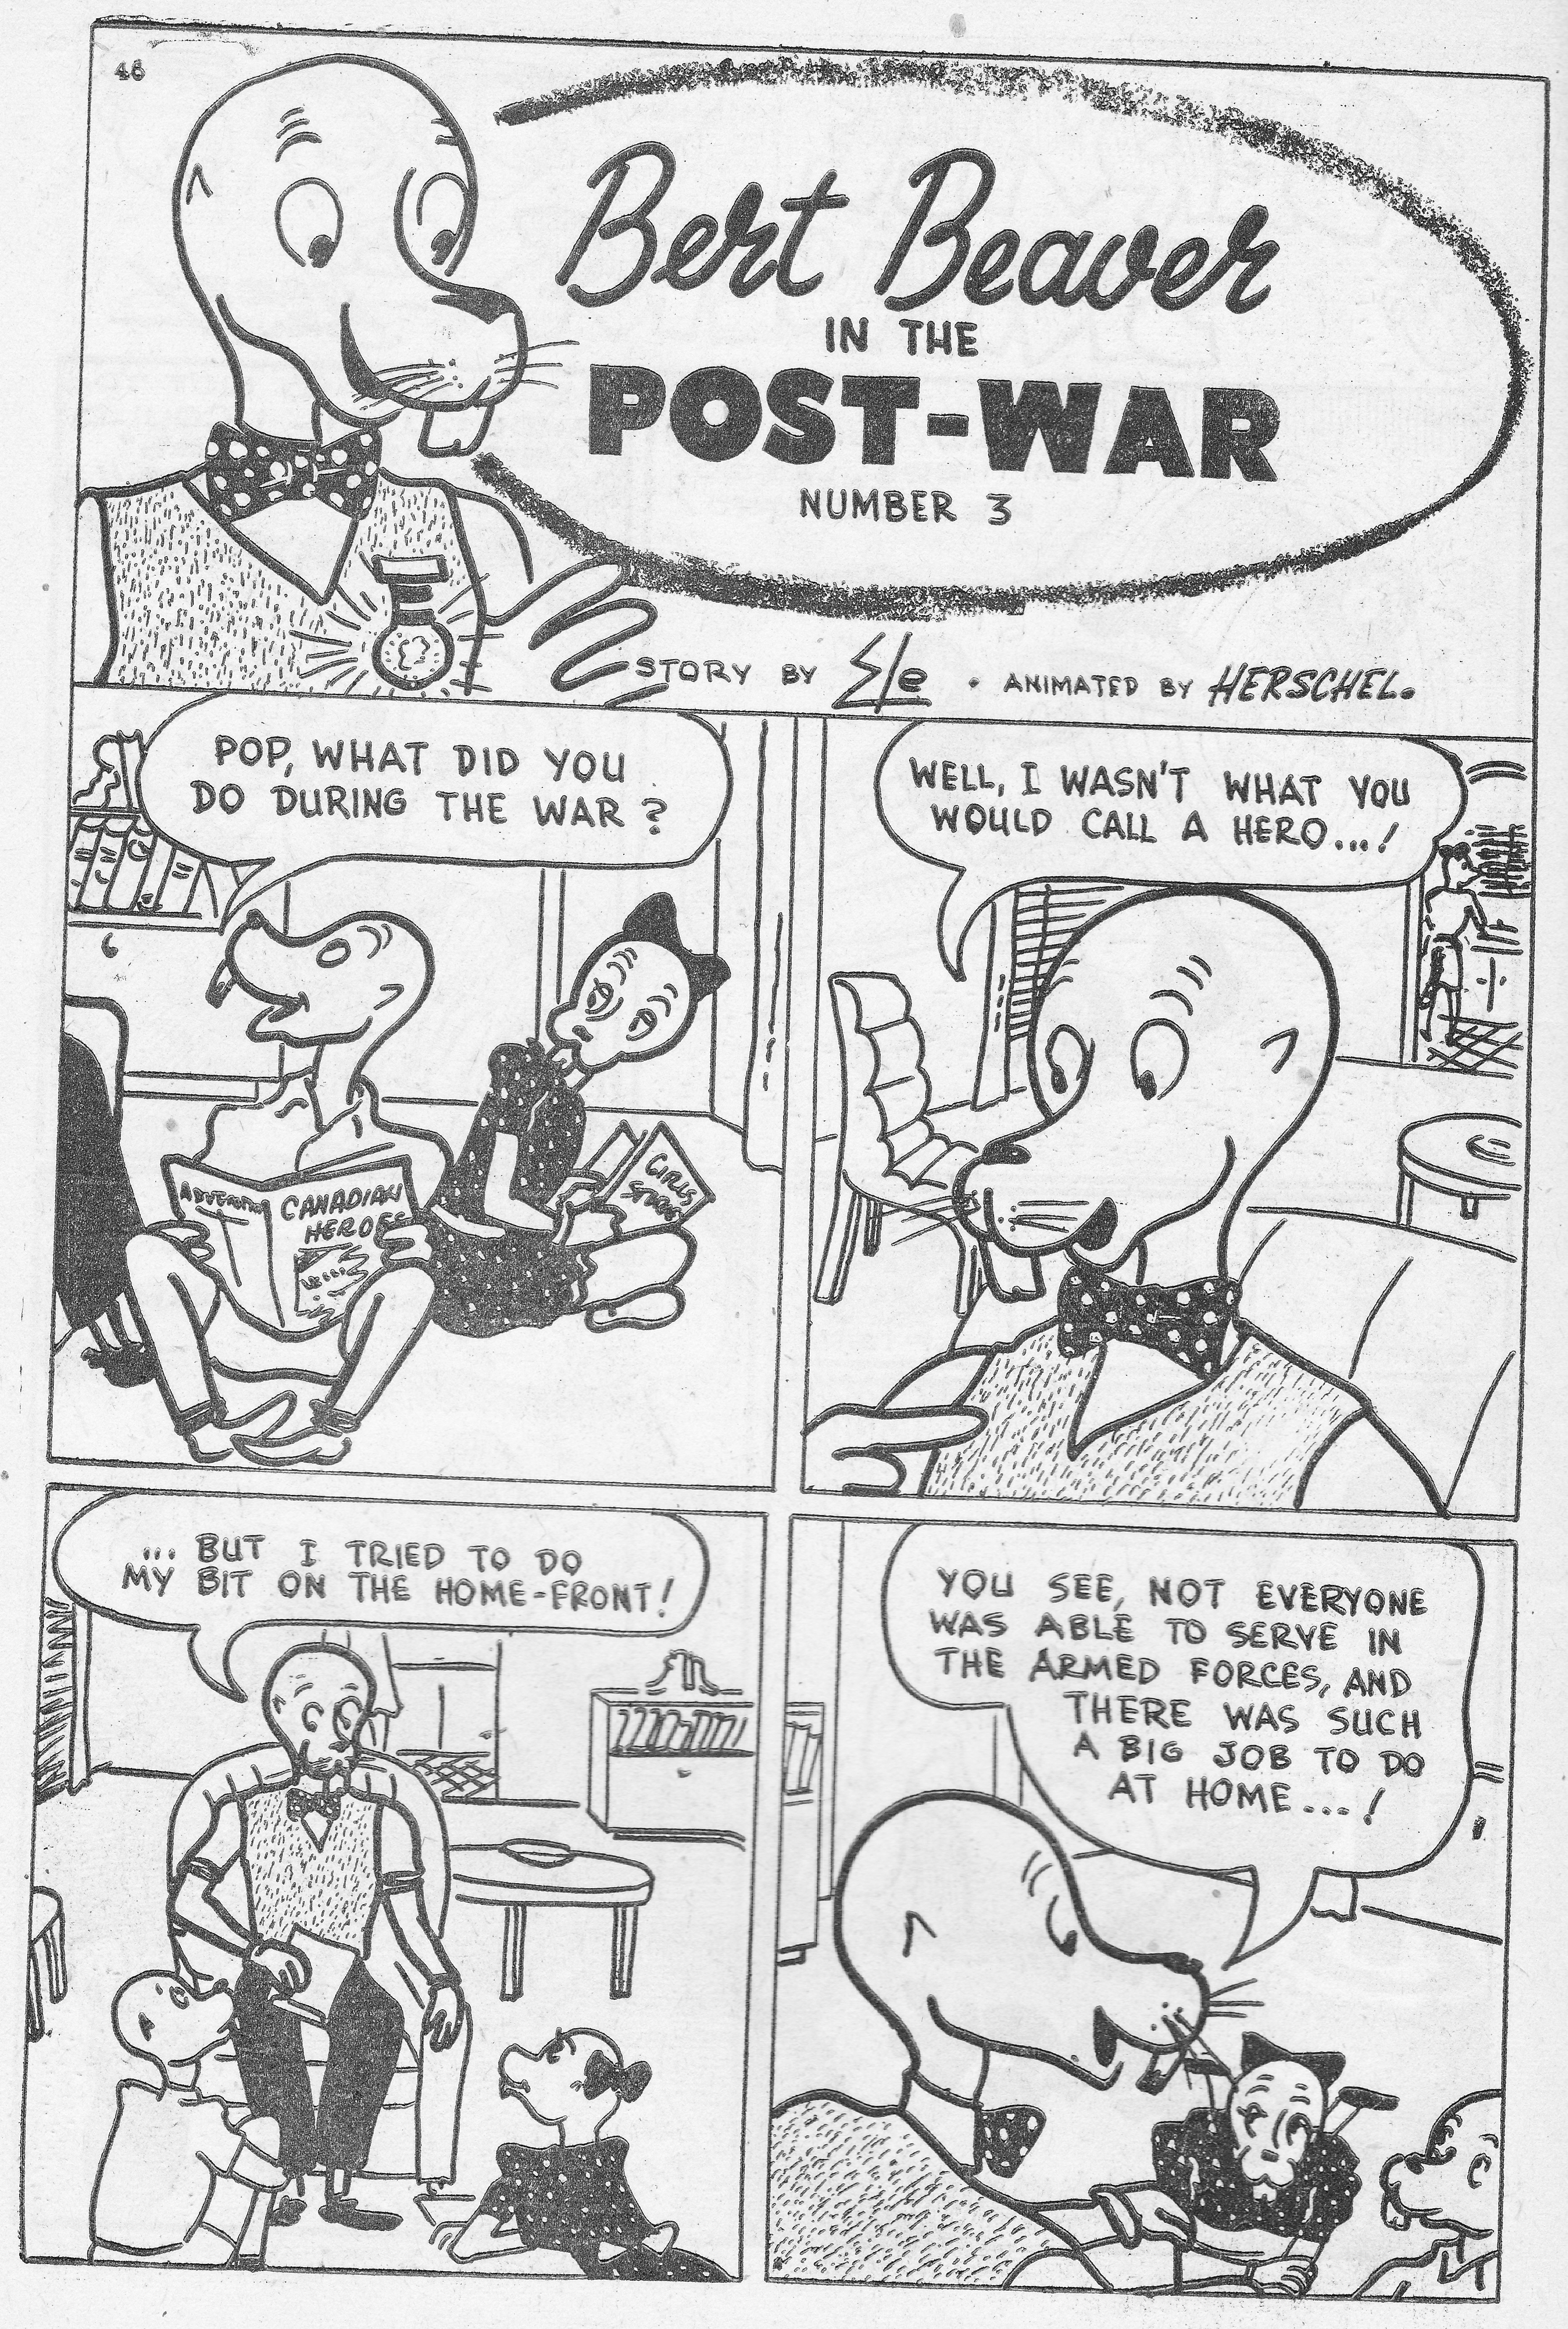 C:\Users\Robert\Documents\CARTOONING ILLUSTRATION ANIMATION\IMAGE CARTOON\IMAGE CARTOON B\BERT BEAVER, Canadian Heroes, 5-3, June 1945, 46.jpg